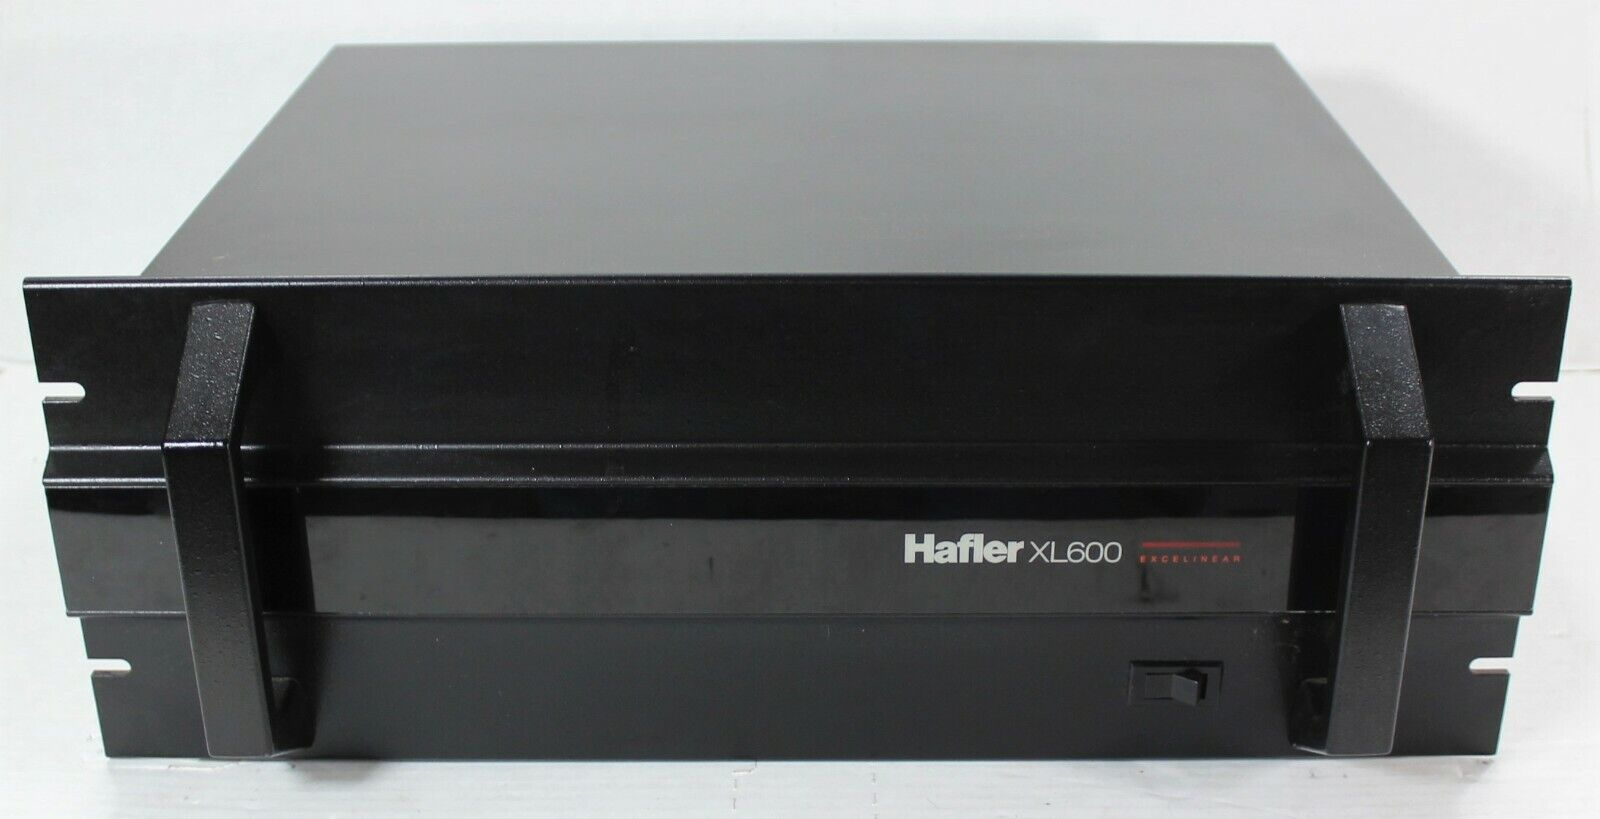 RARE FIND Hafler XL-600 Excelinear 305 w/ch Amplifier Excellent Condition!. Buy it now for 1039.99